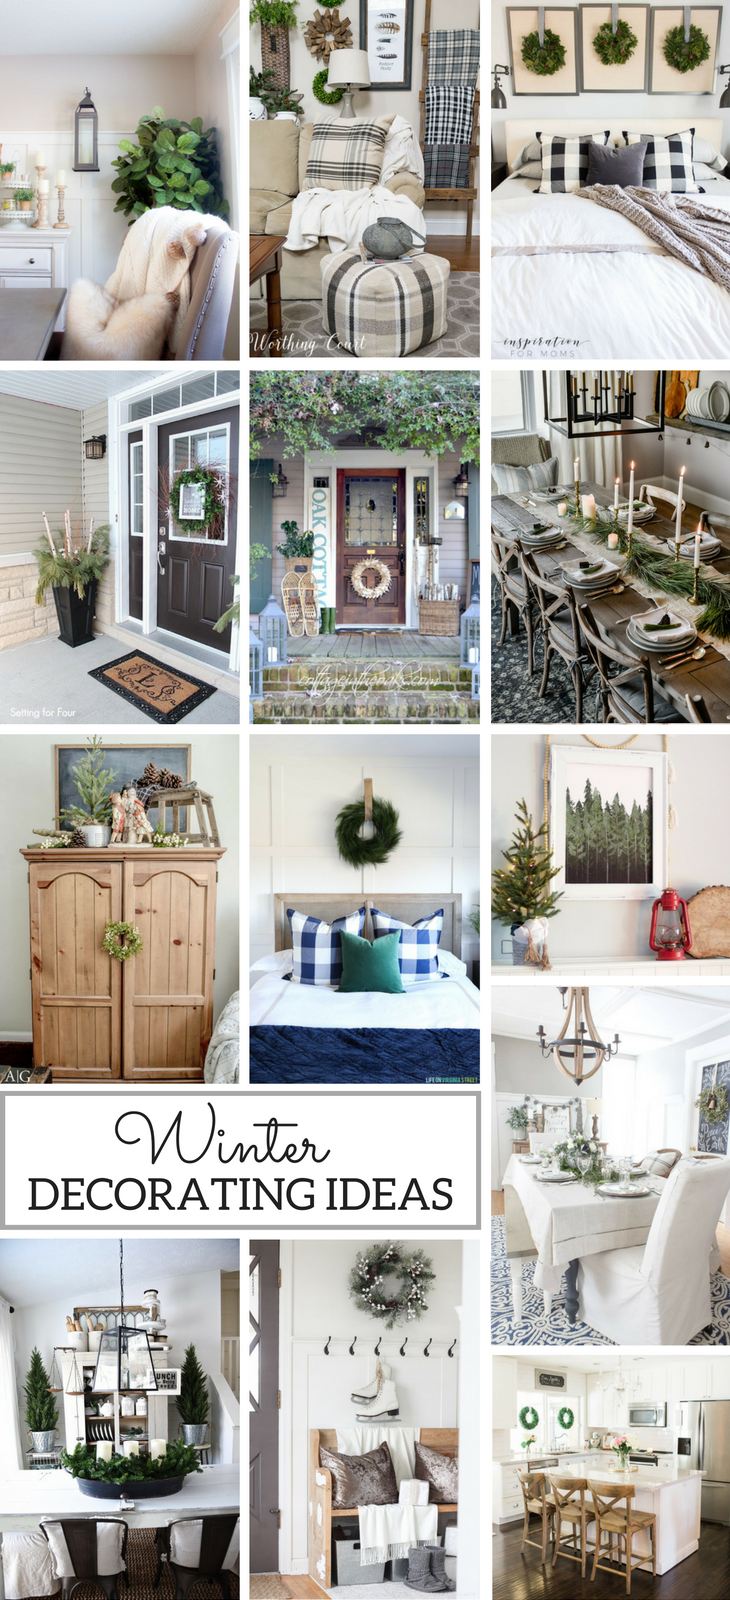 Winter Decorating Ideas for After Christmas | Pinterest | Winter ...